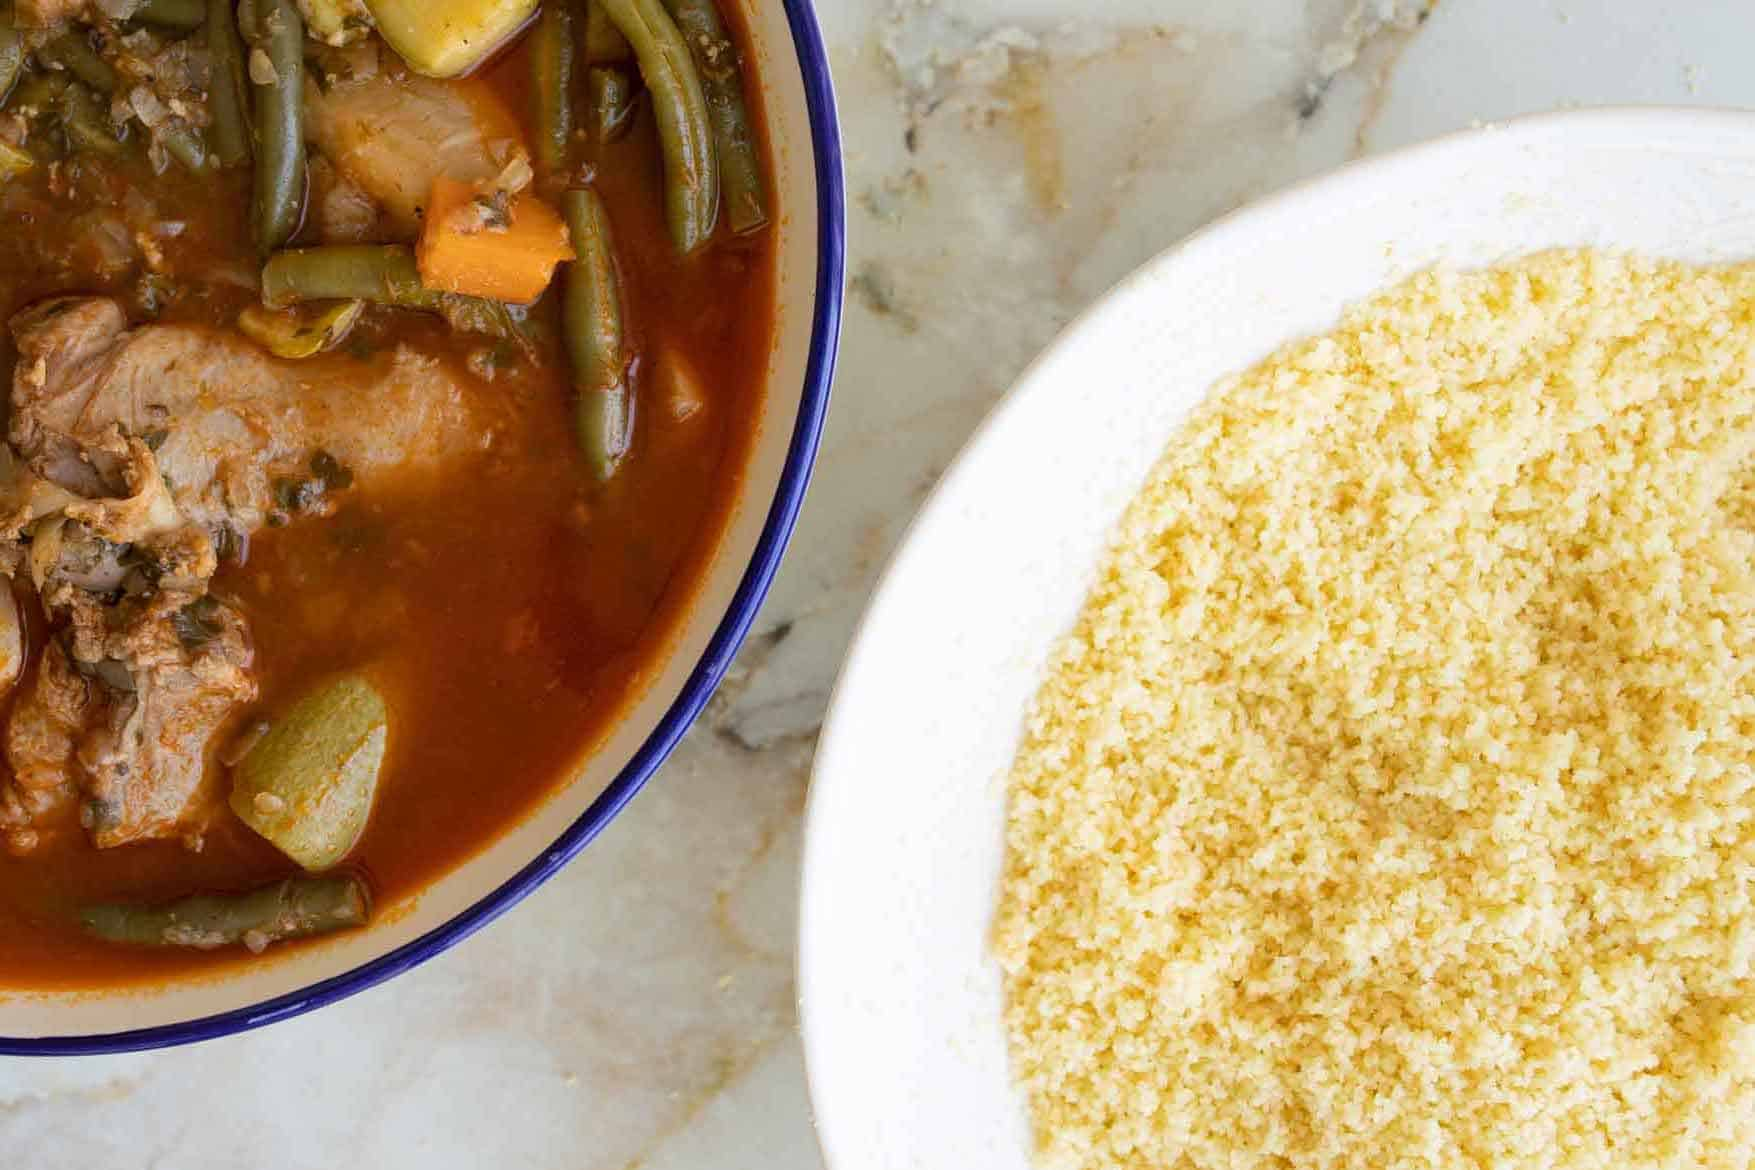 couscous in a bowl next to lamb shoulder stew